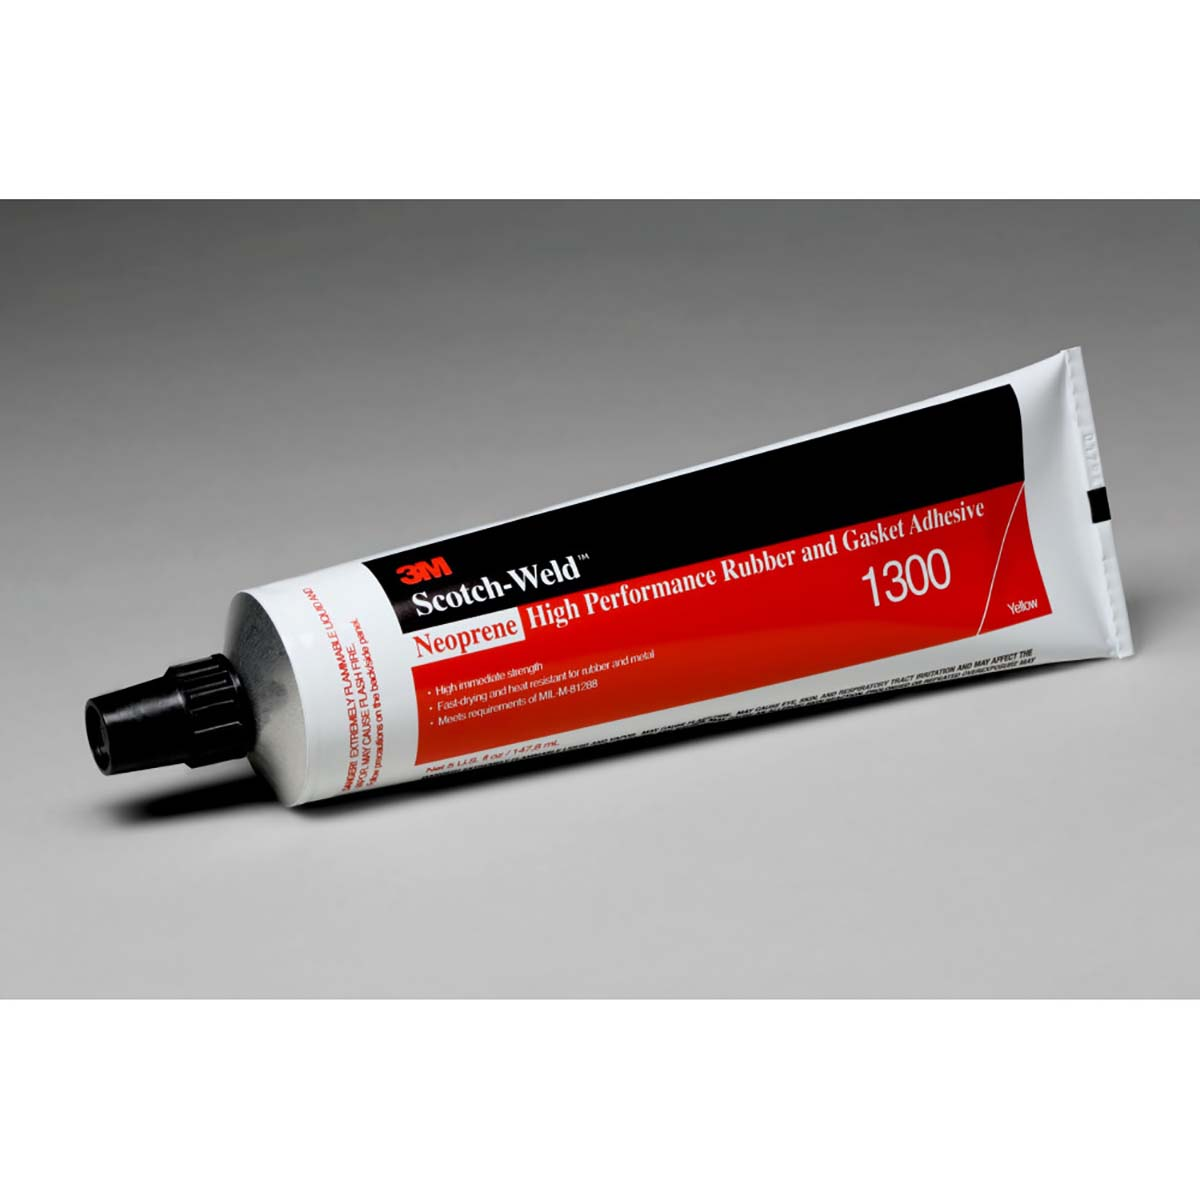 3M Neoprene High Performance Rubber And Gasket Adhesive 1300 Yellow  5 Ounce Tube  36 per case